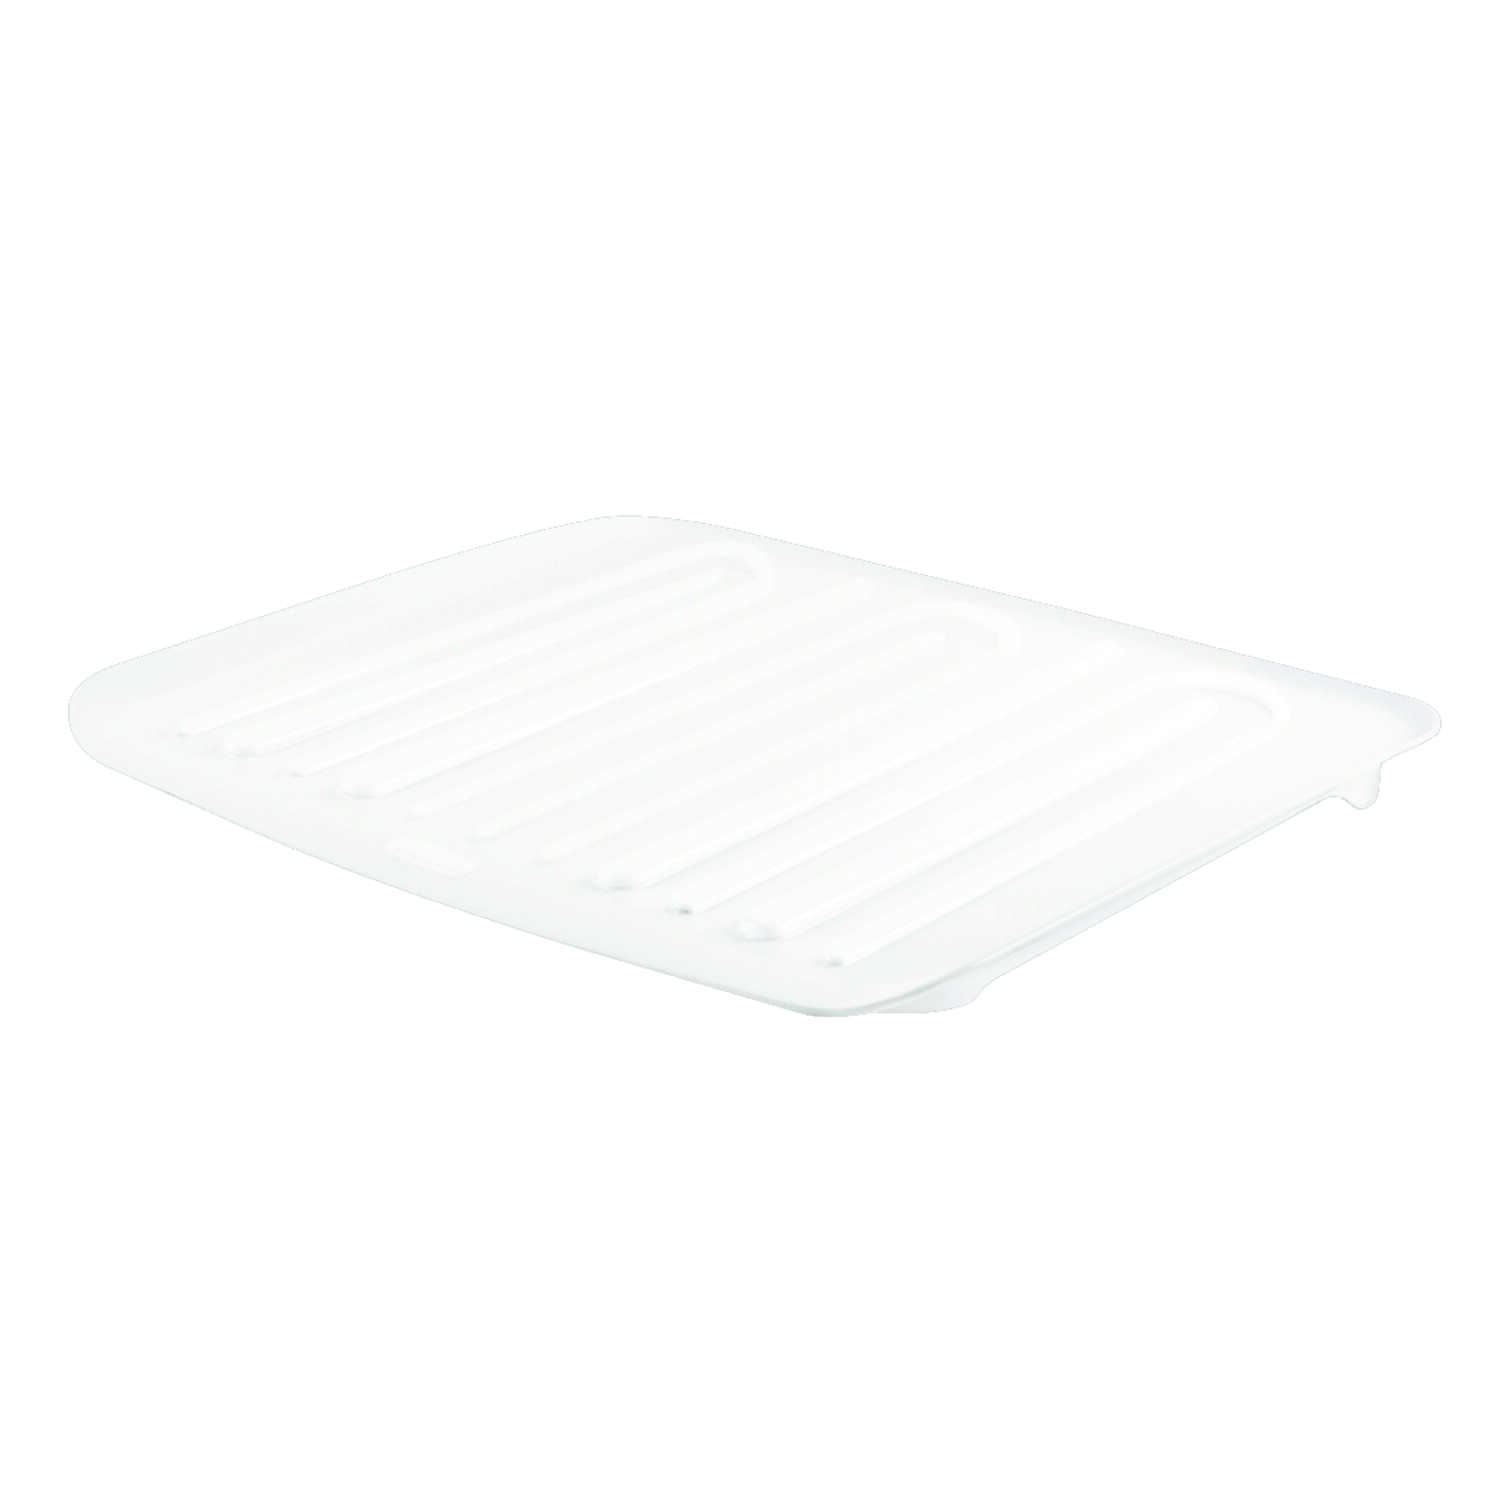 Rubbermaid  18 in. W x 1.3 in. H x 14.7 in. L Plastic  Dish Drainer  White